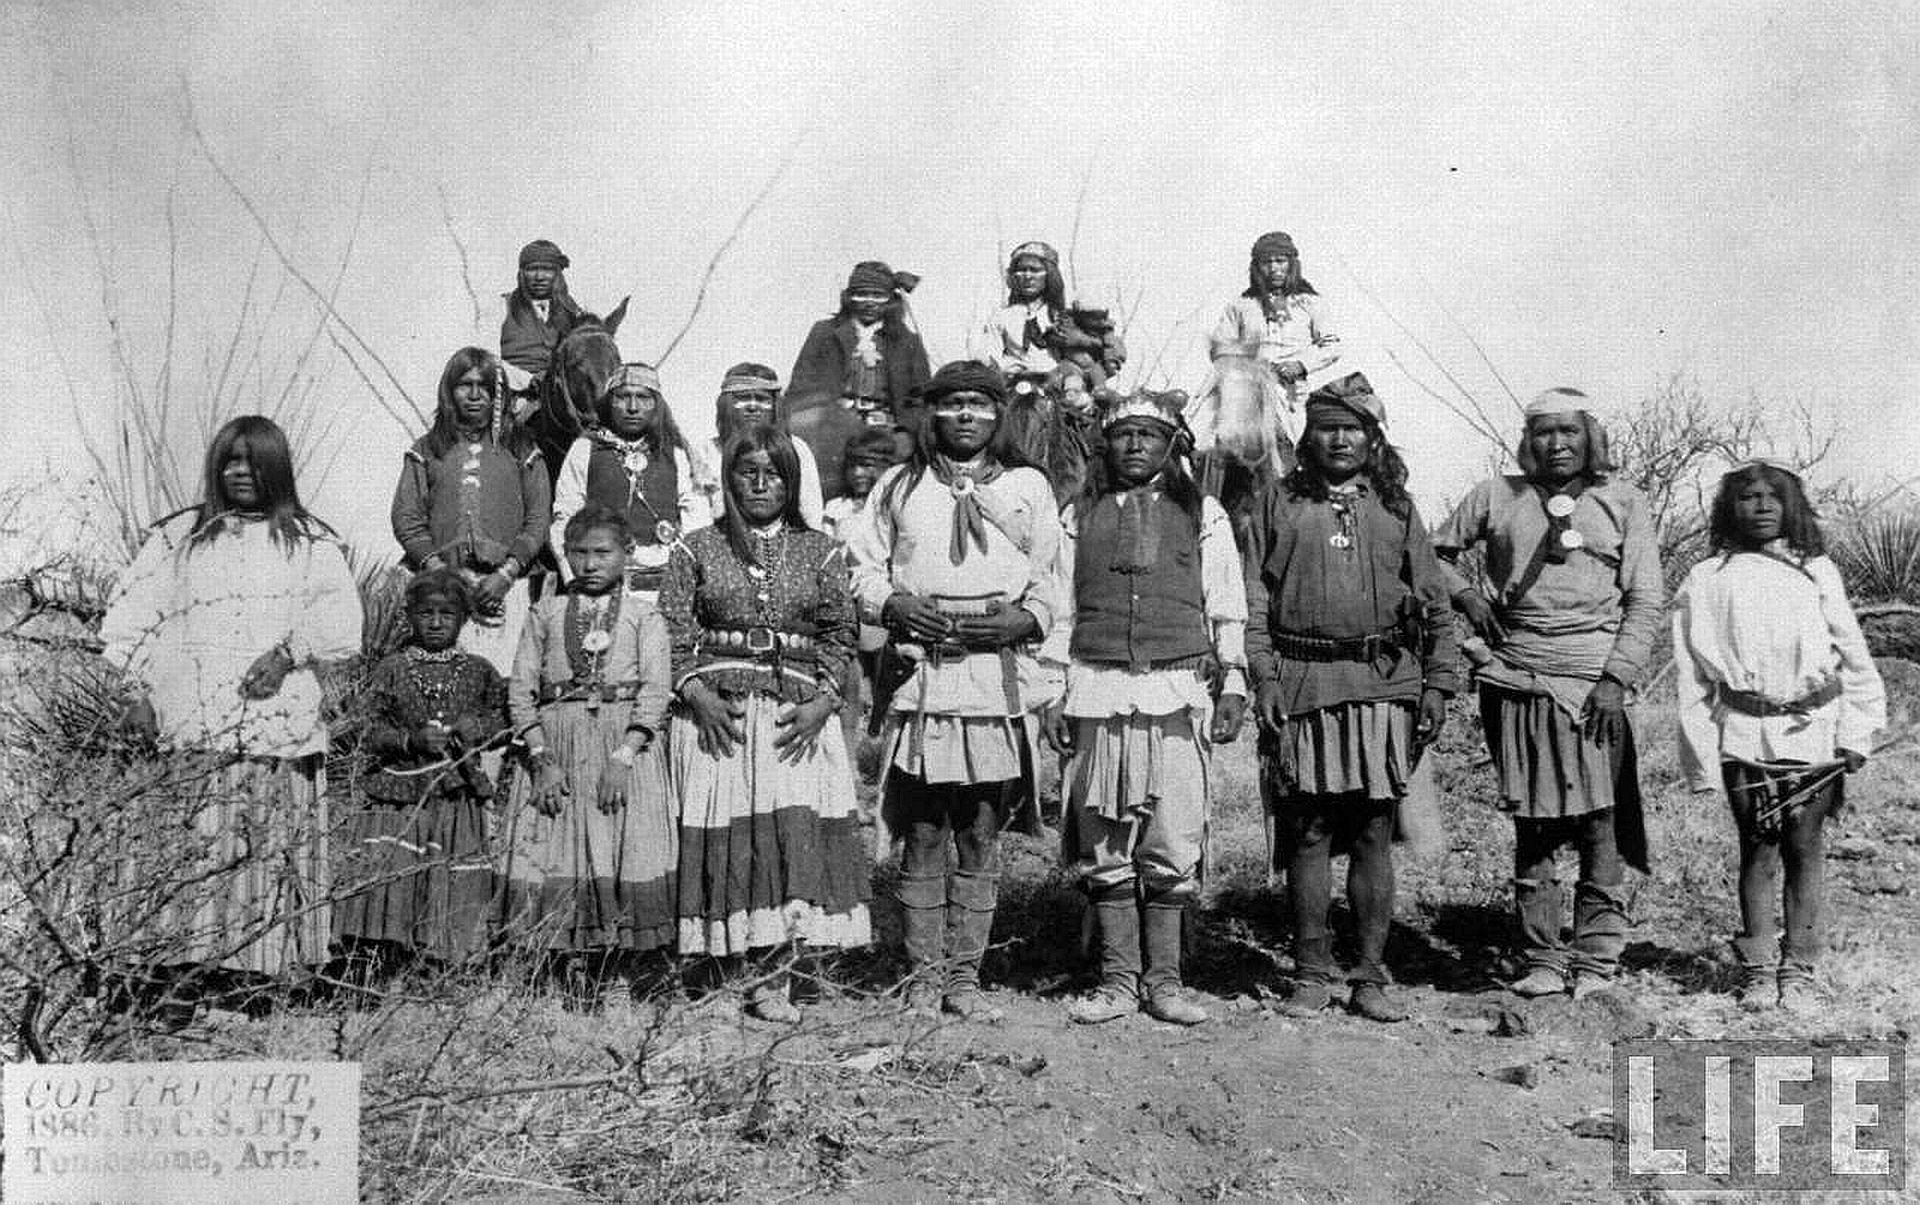 Band of Chiricahua Apache Indians wallpaper   ForWallpapercom 1920x1205